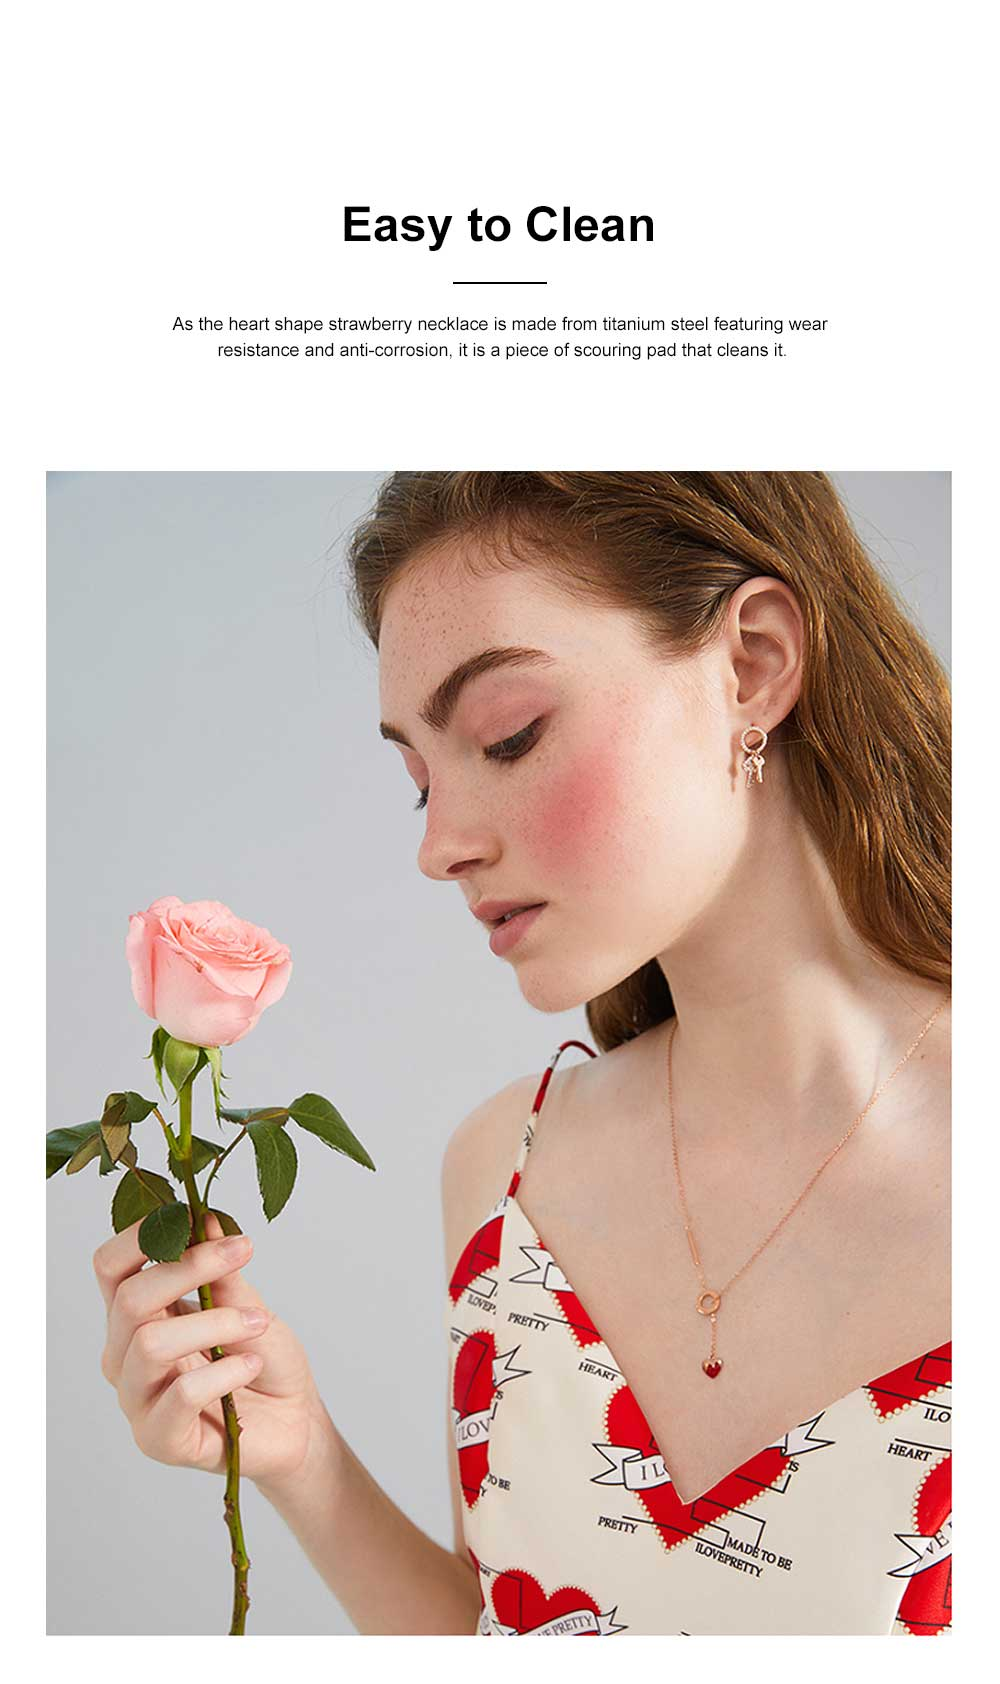 Heart Shape Strawberry Necklace Wear Resistant Lustrous Titanium Steel Clavicle Necklace Stainless Steel Jewelry Online Bestseller Minority Design Necklace 2